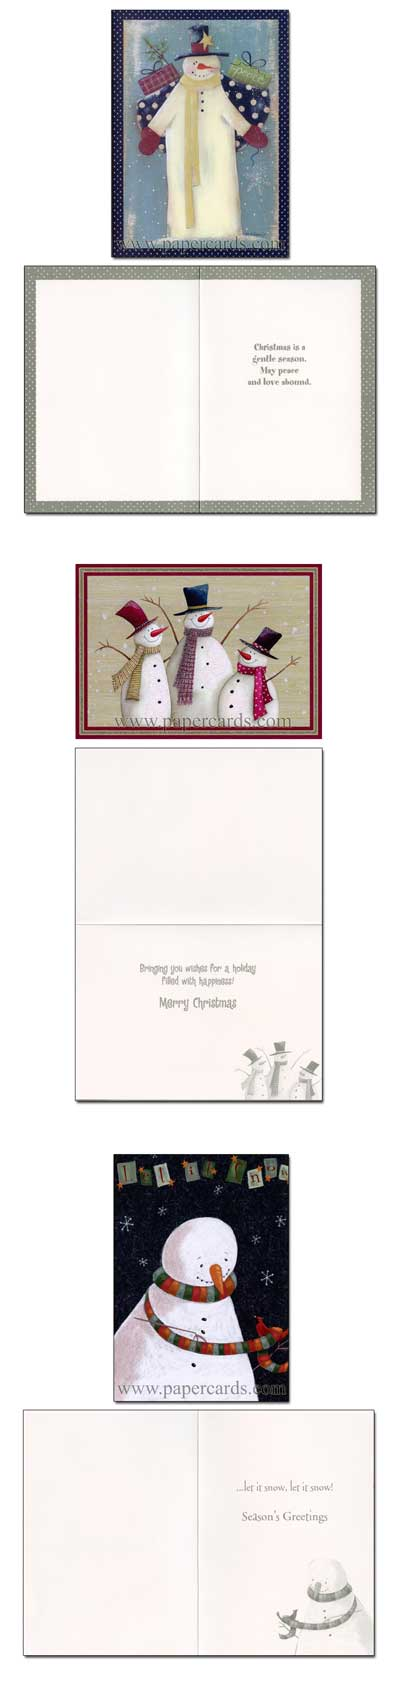 Let It Snow Keepsake Assortment Box Of 21 Christmas Cards